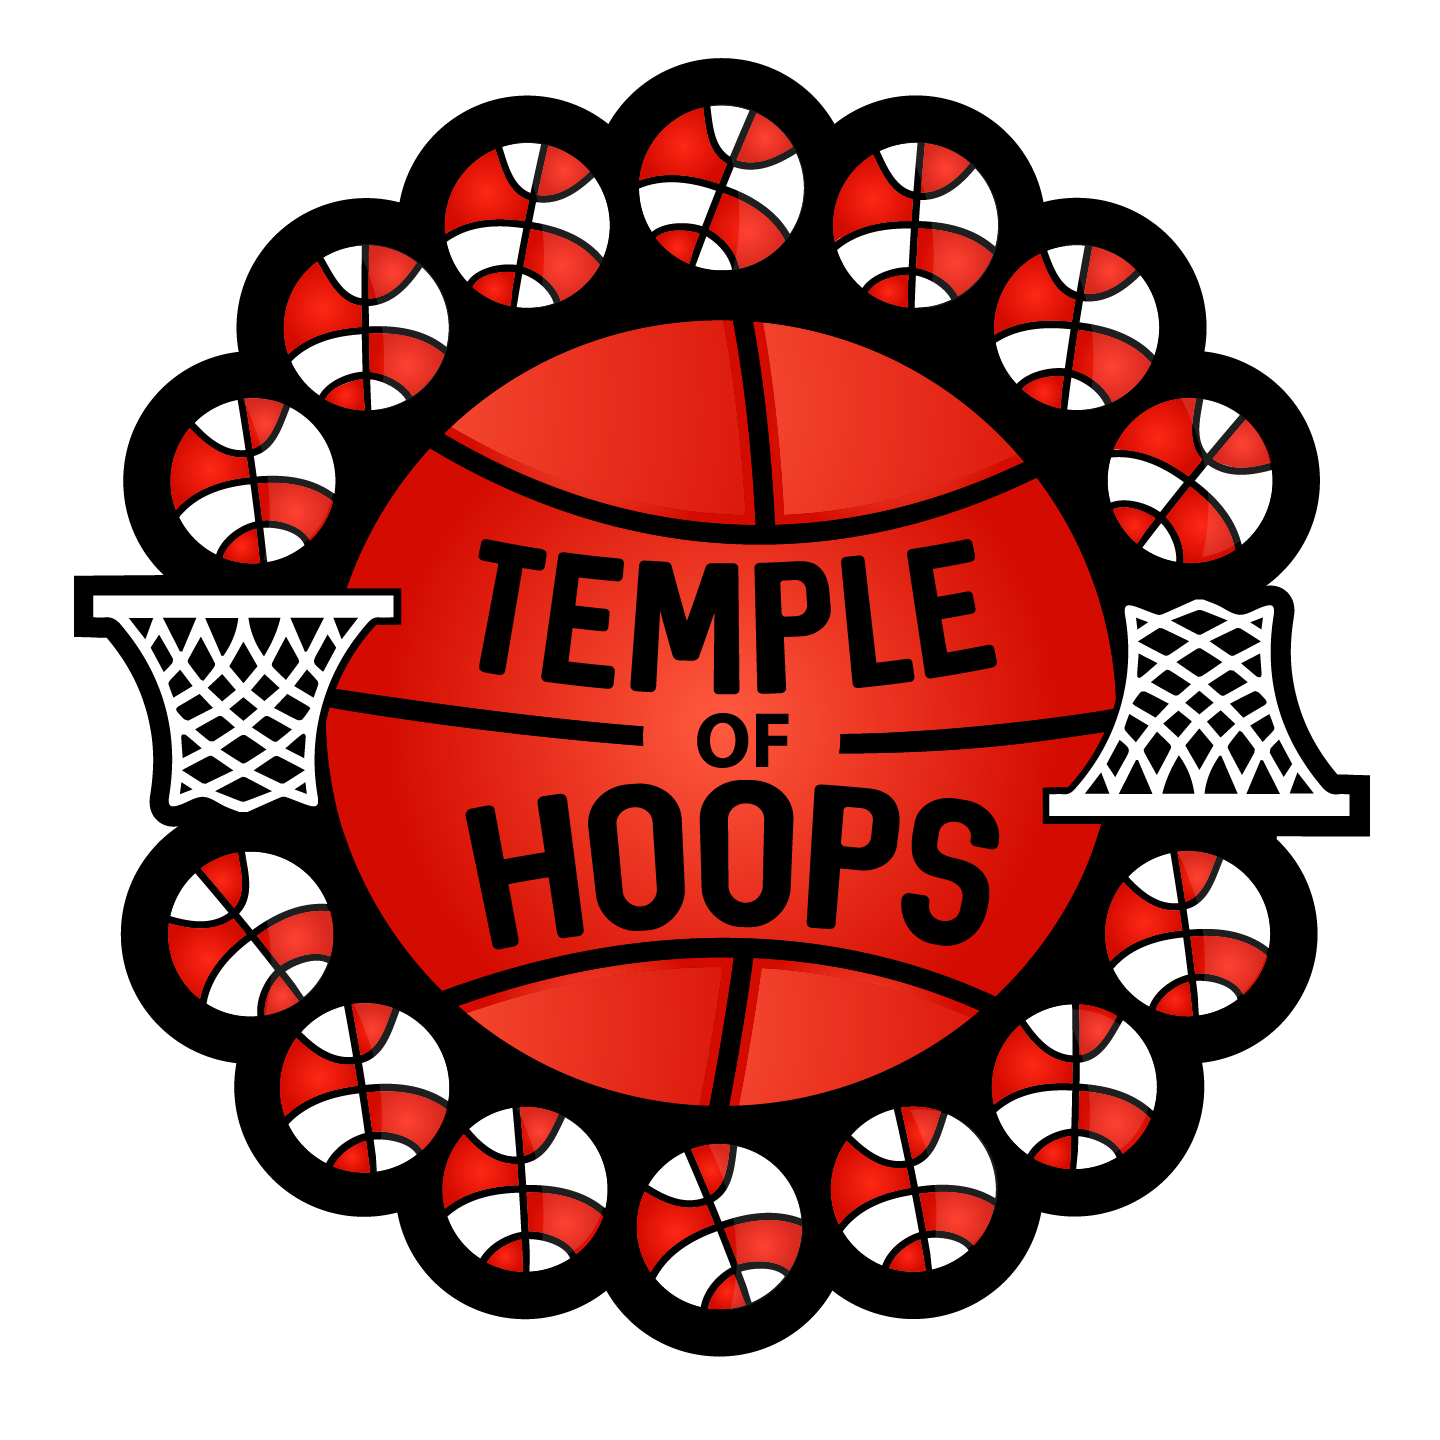 Temple of Hoops LLC primary image